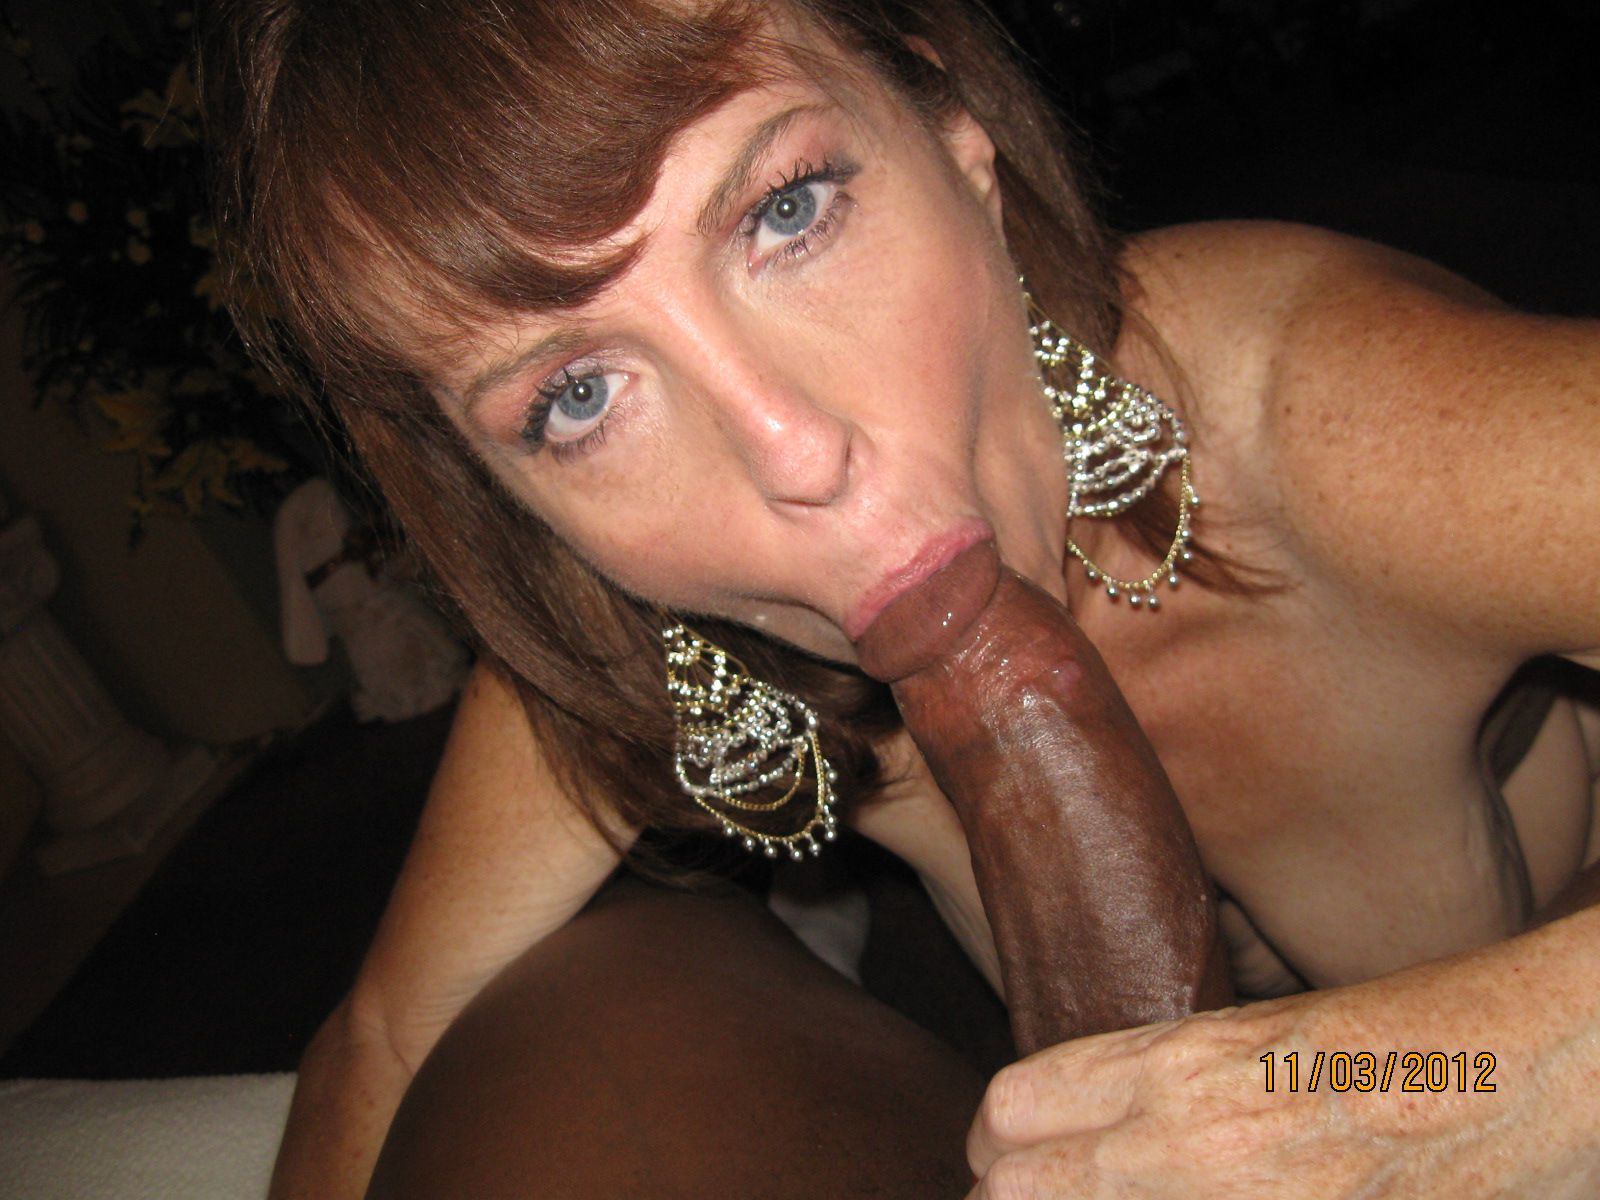 Training my petite pussy with 14 inch dildo riding and squatting 5